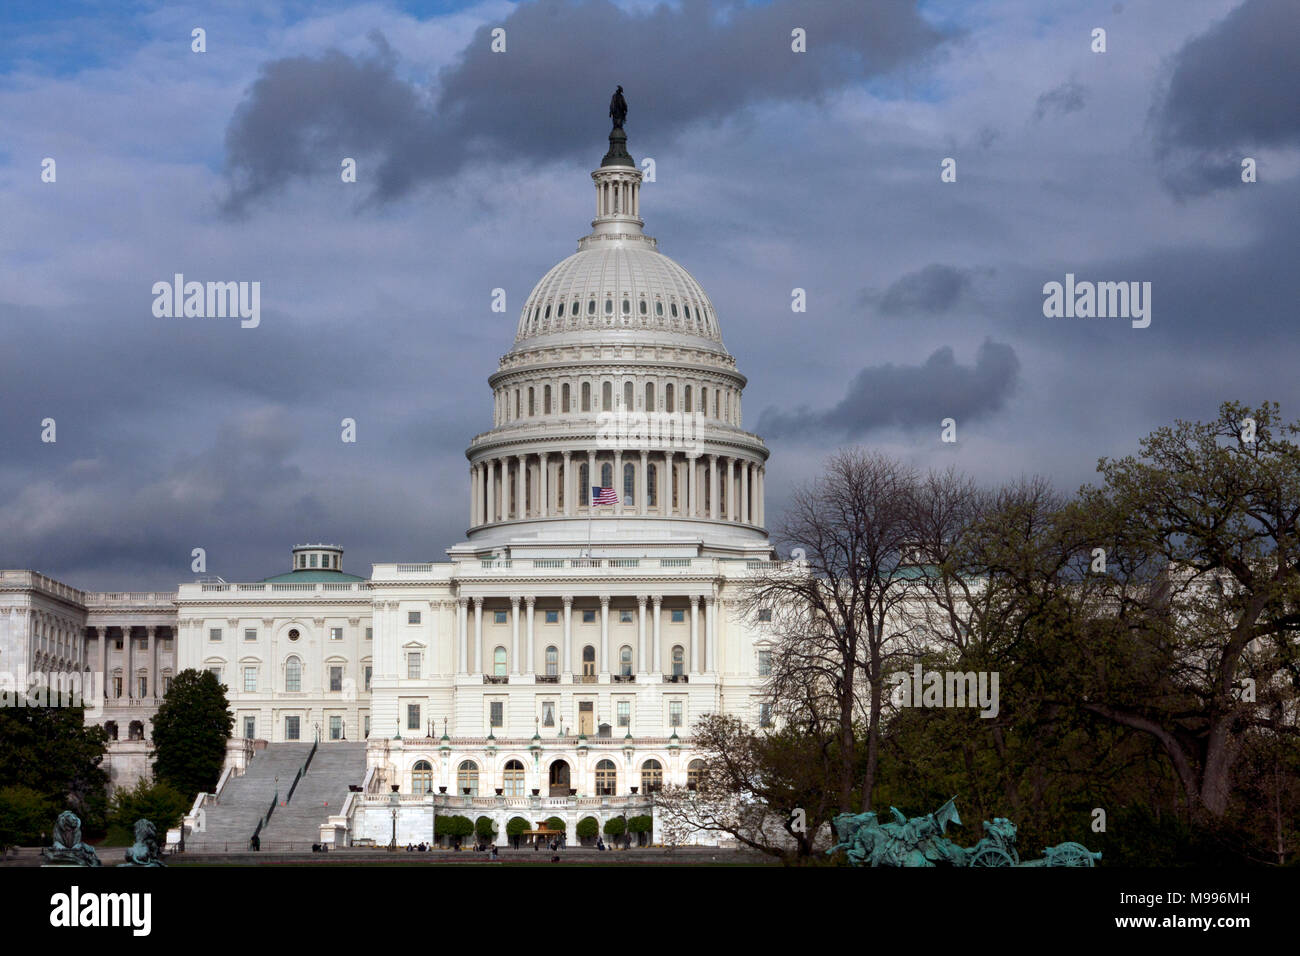 The United States Capitol building in Washington, D.C. - Stock Image